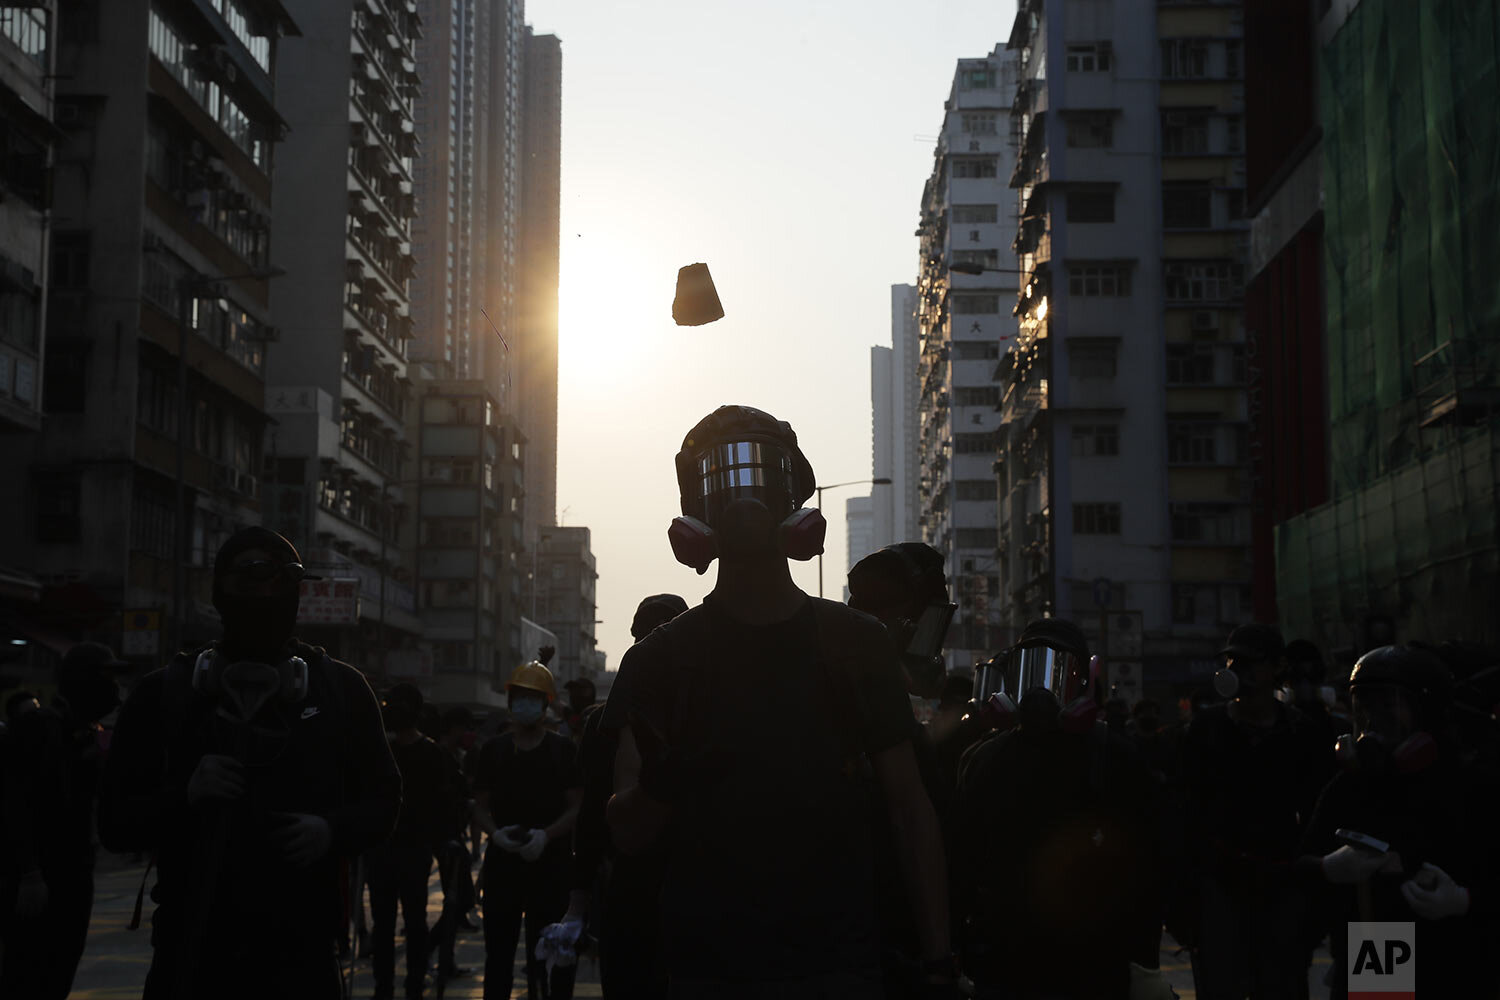 Protestors wearing masks watch as they clash with police in Hong Kong, Sunday, Oct. 20, 2019. (AP Photo/Kin Cheung)